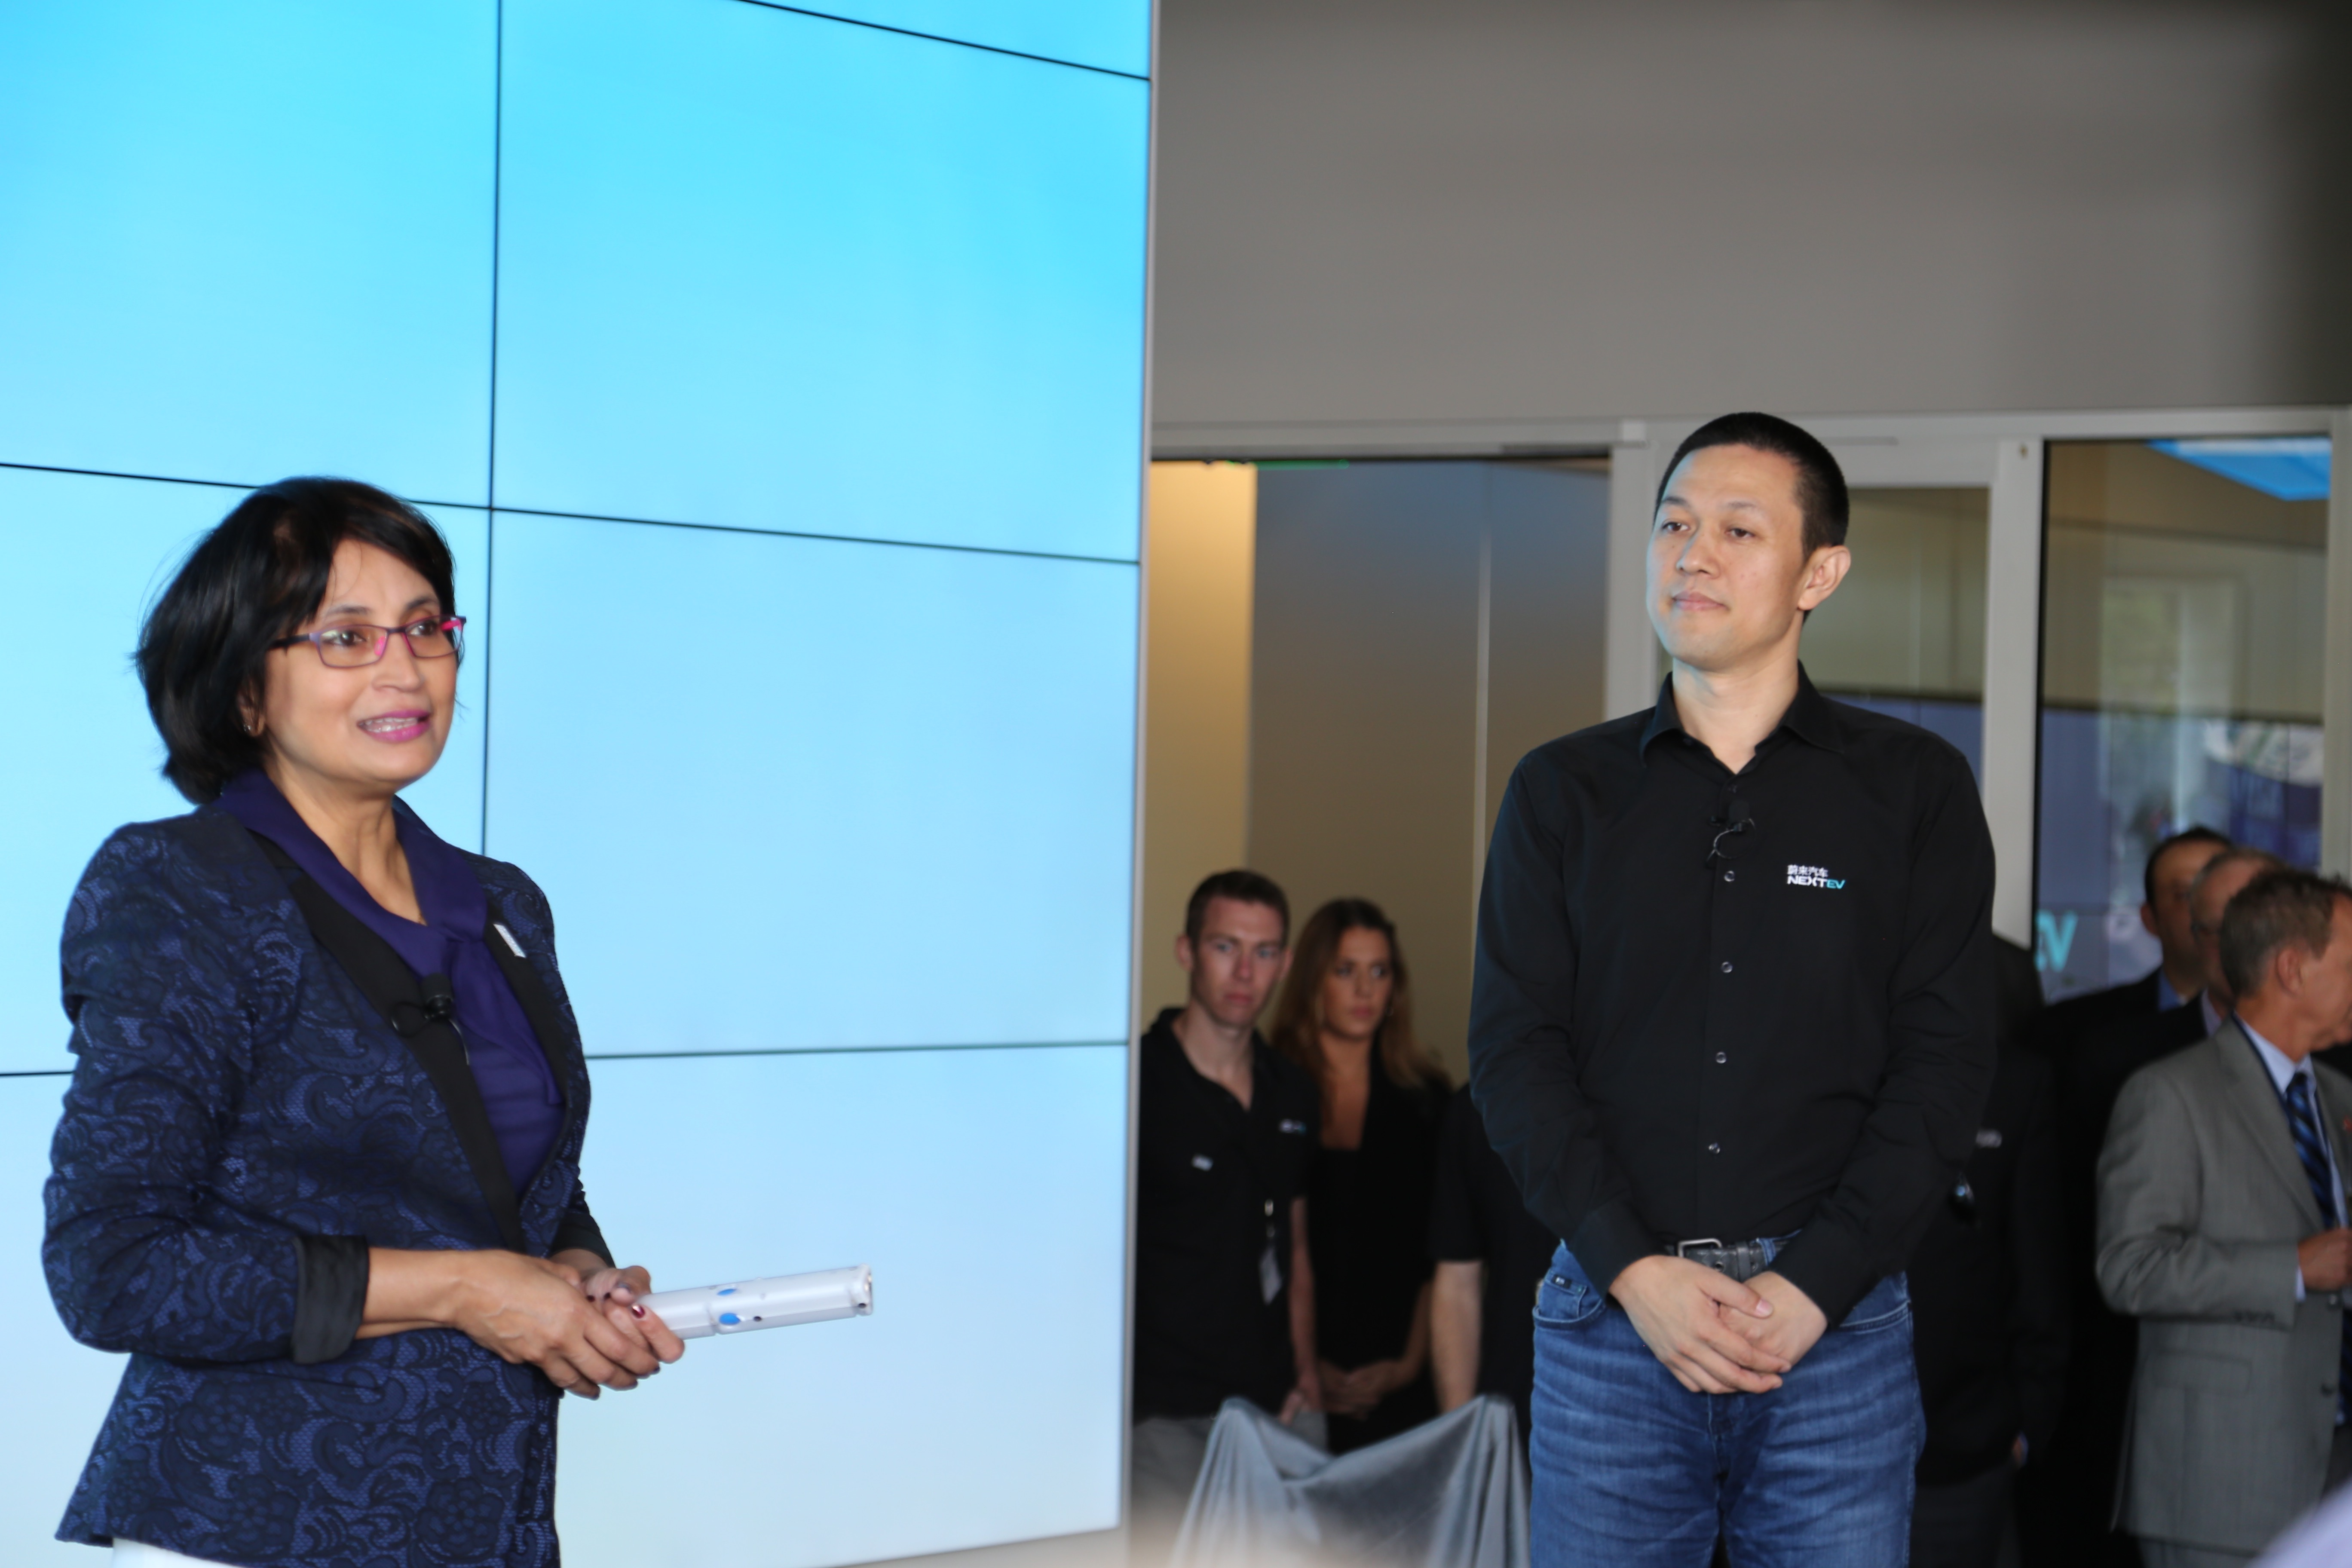 NextEV's US CEO Padmasree Warrior and Founder William Li at the company's kick-off event in San Jose, Calif.